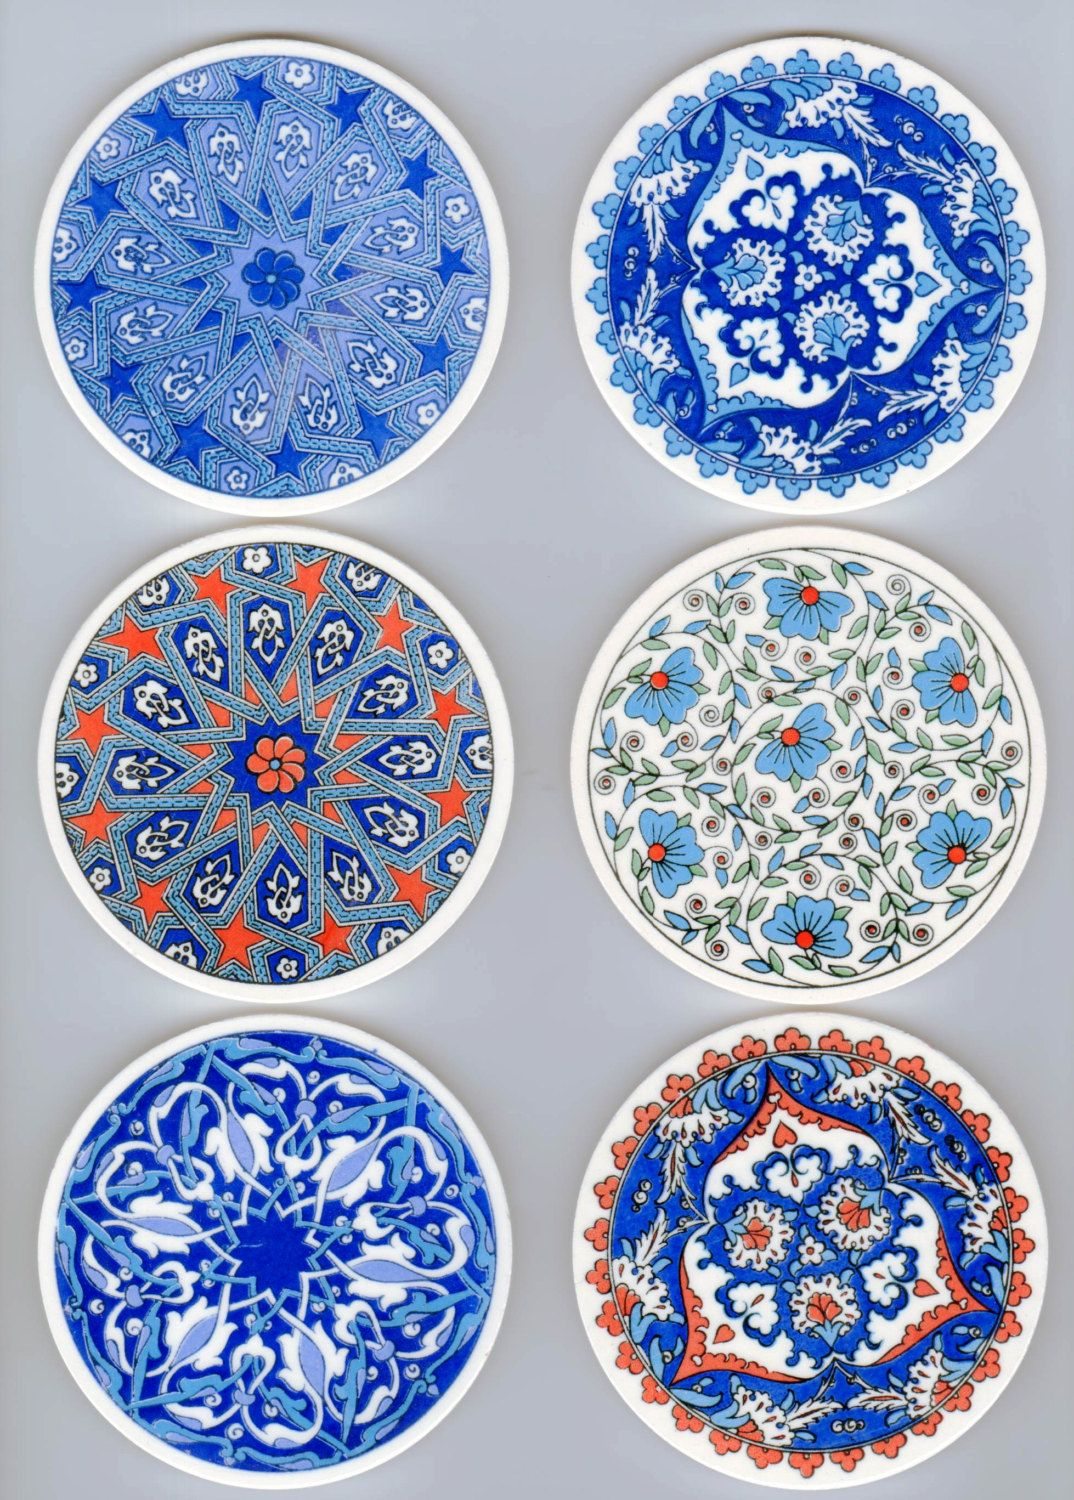 LOVE these Jeannie! And now I have ideas swirling for trivets! I need more also Hope you are doing great! Kimm at Reinvented recently posted